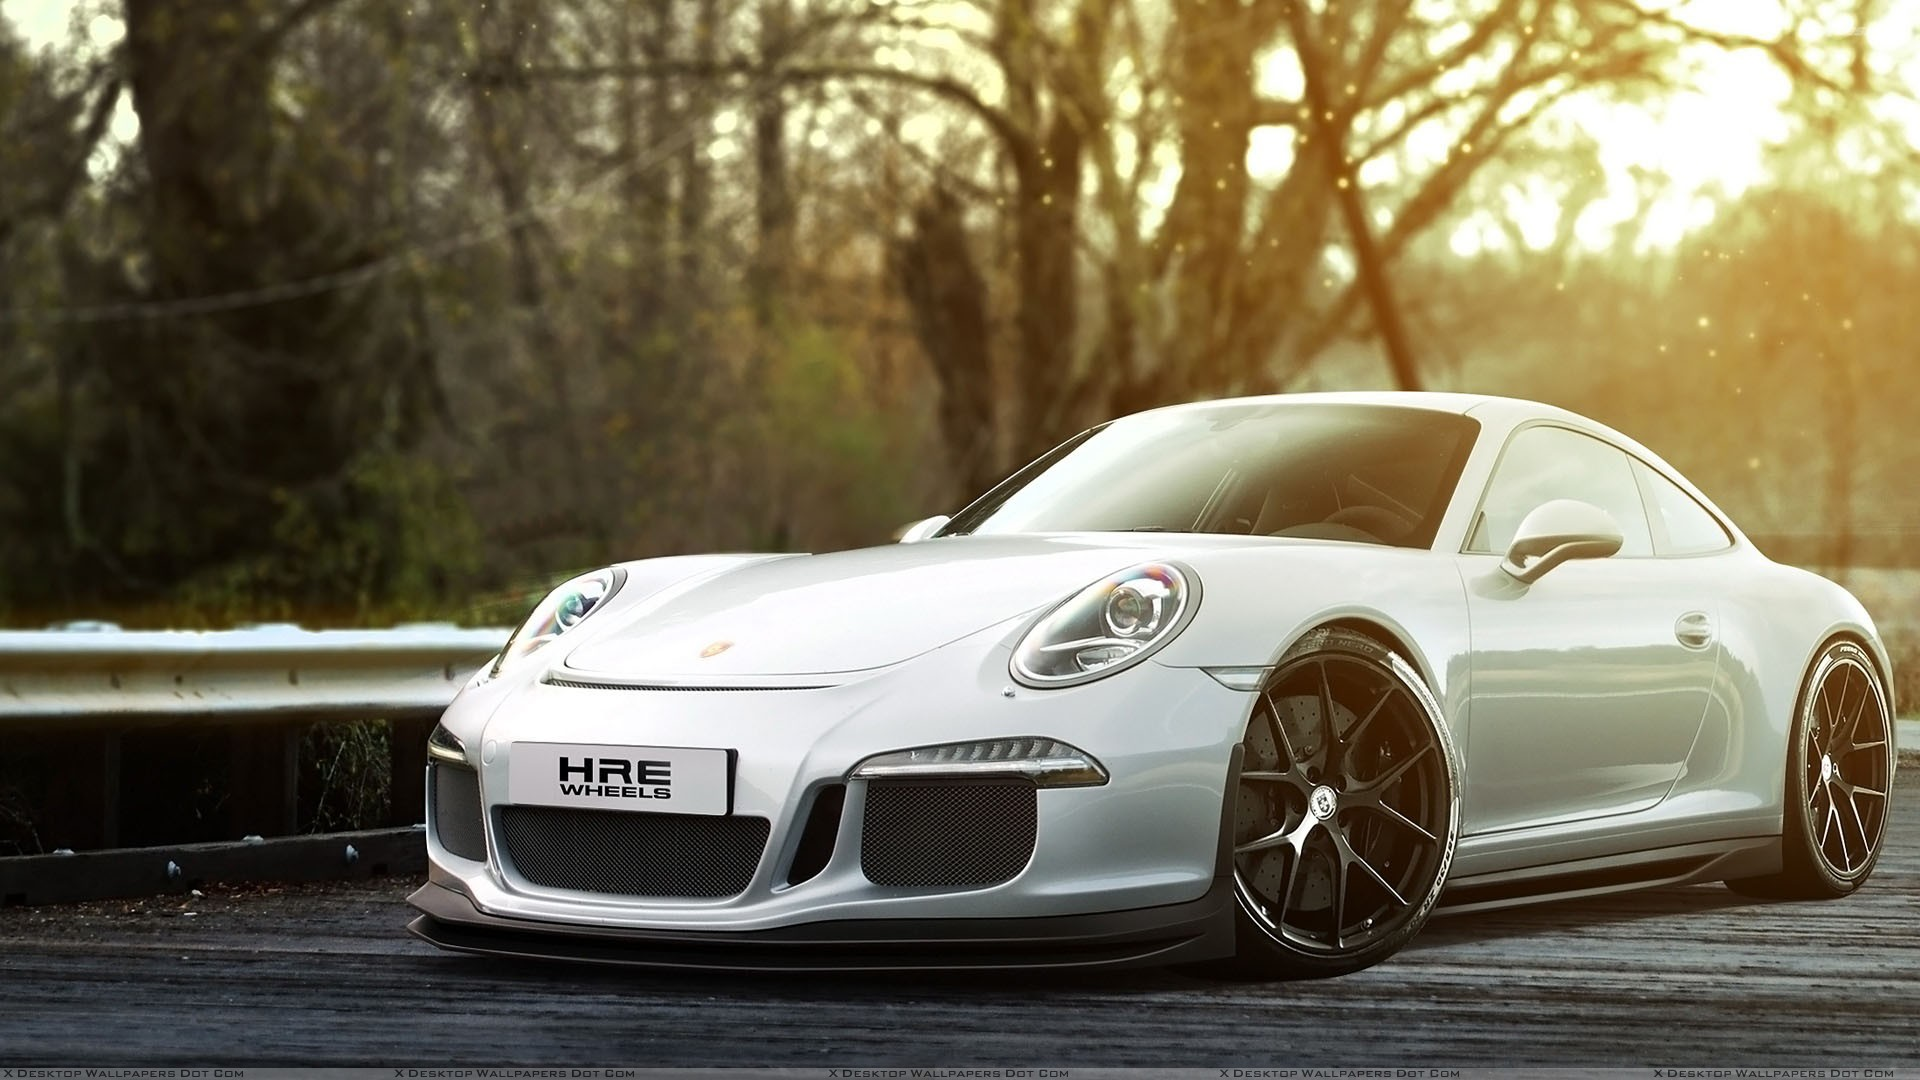 Porsche Wallpapers Photos Images In Hd